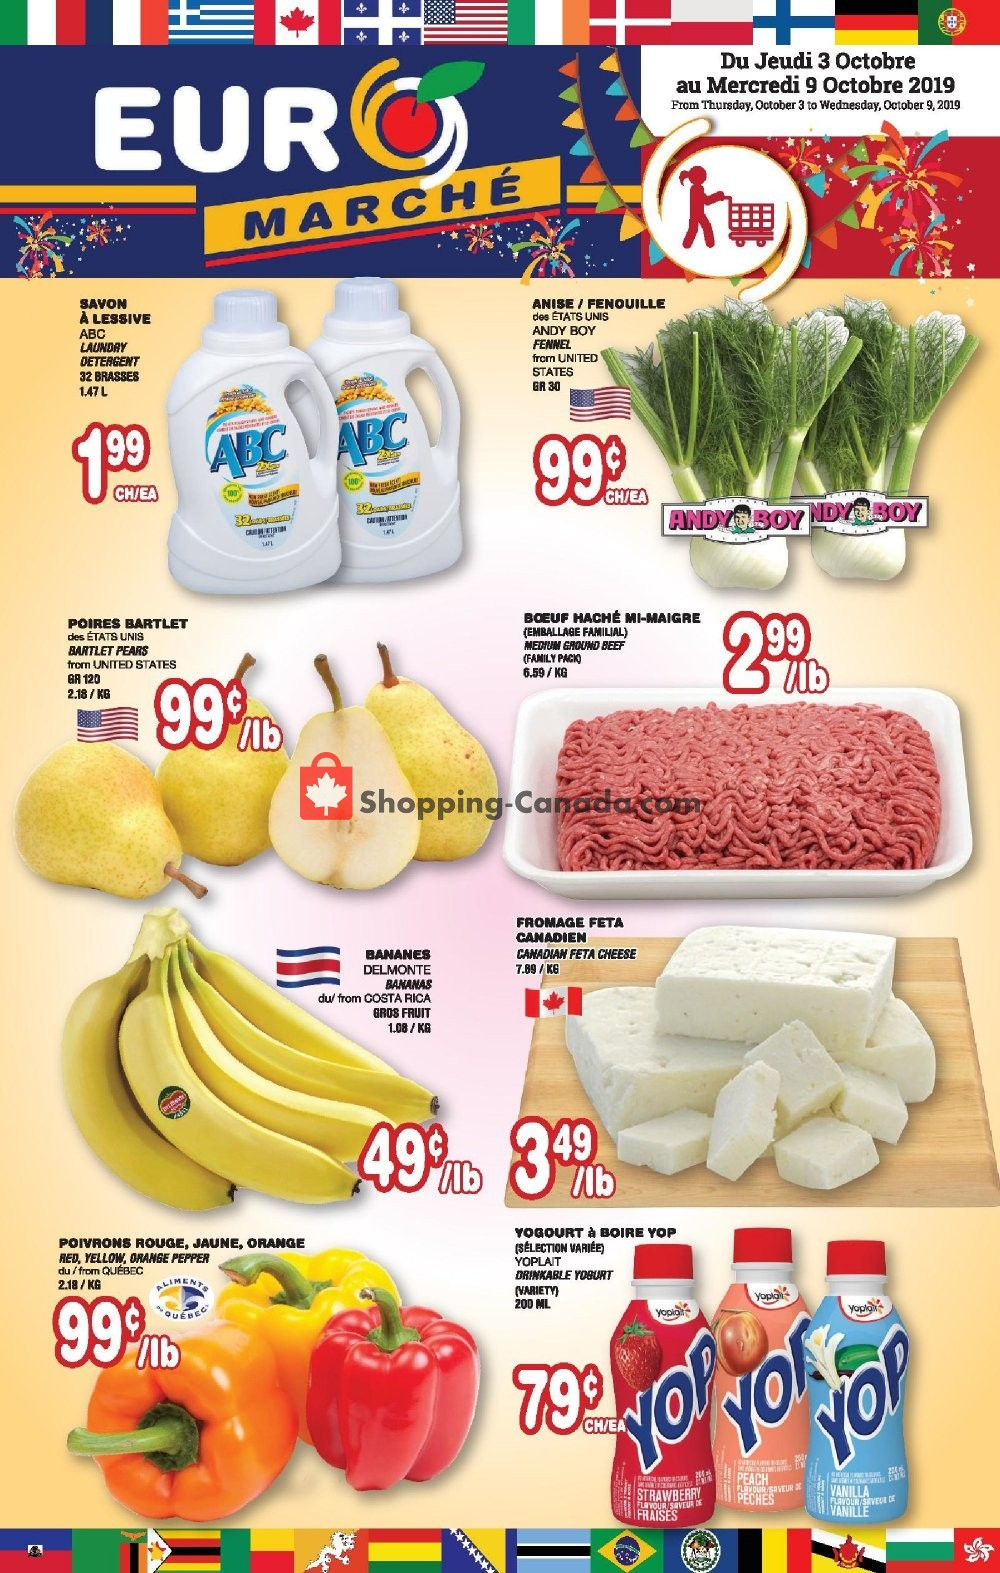 Flyer Euro Marché Canada - from Thursday October 3, 2019 to Wednesday October 9, 2019